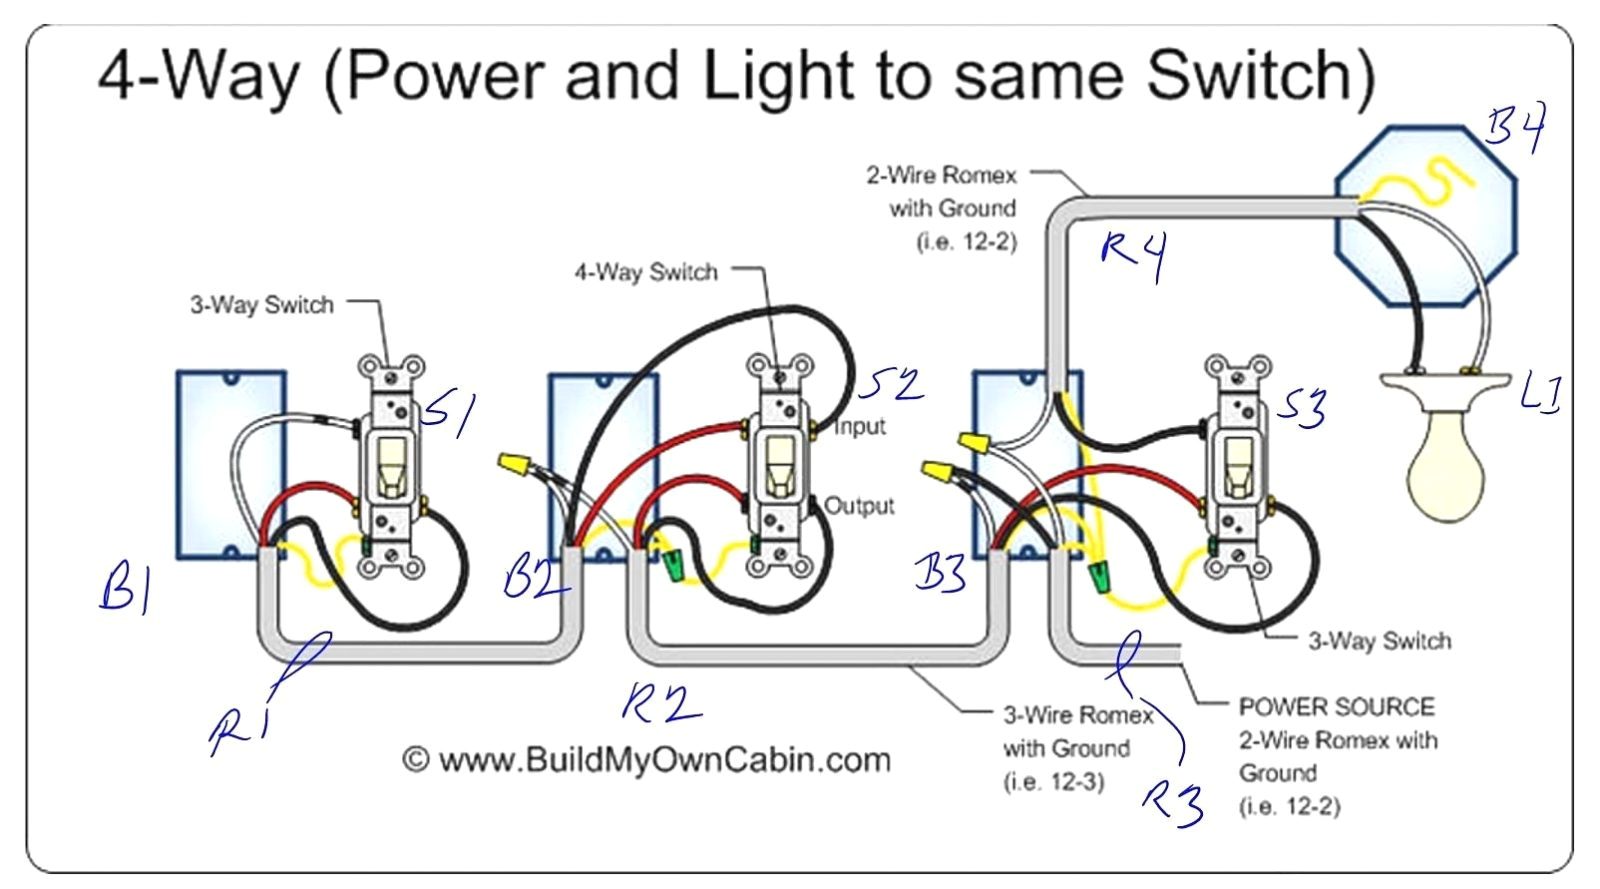 way switch wiring diagram power to then double light switch diagram power through light to switchpowerintolightwiringjpg